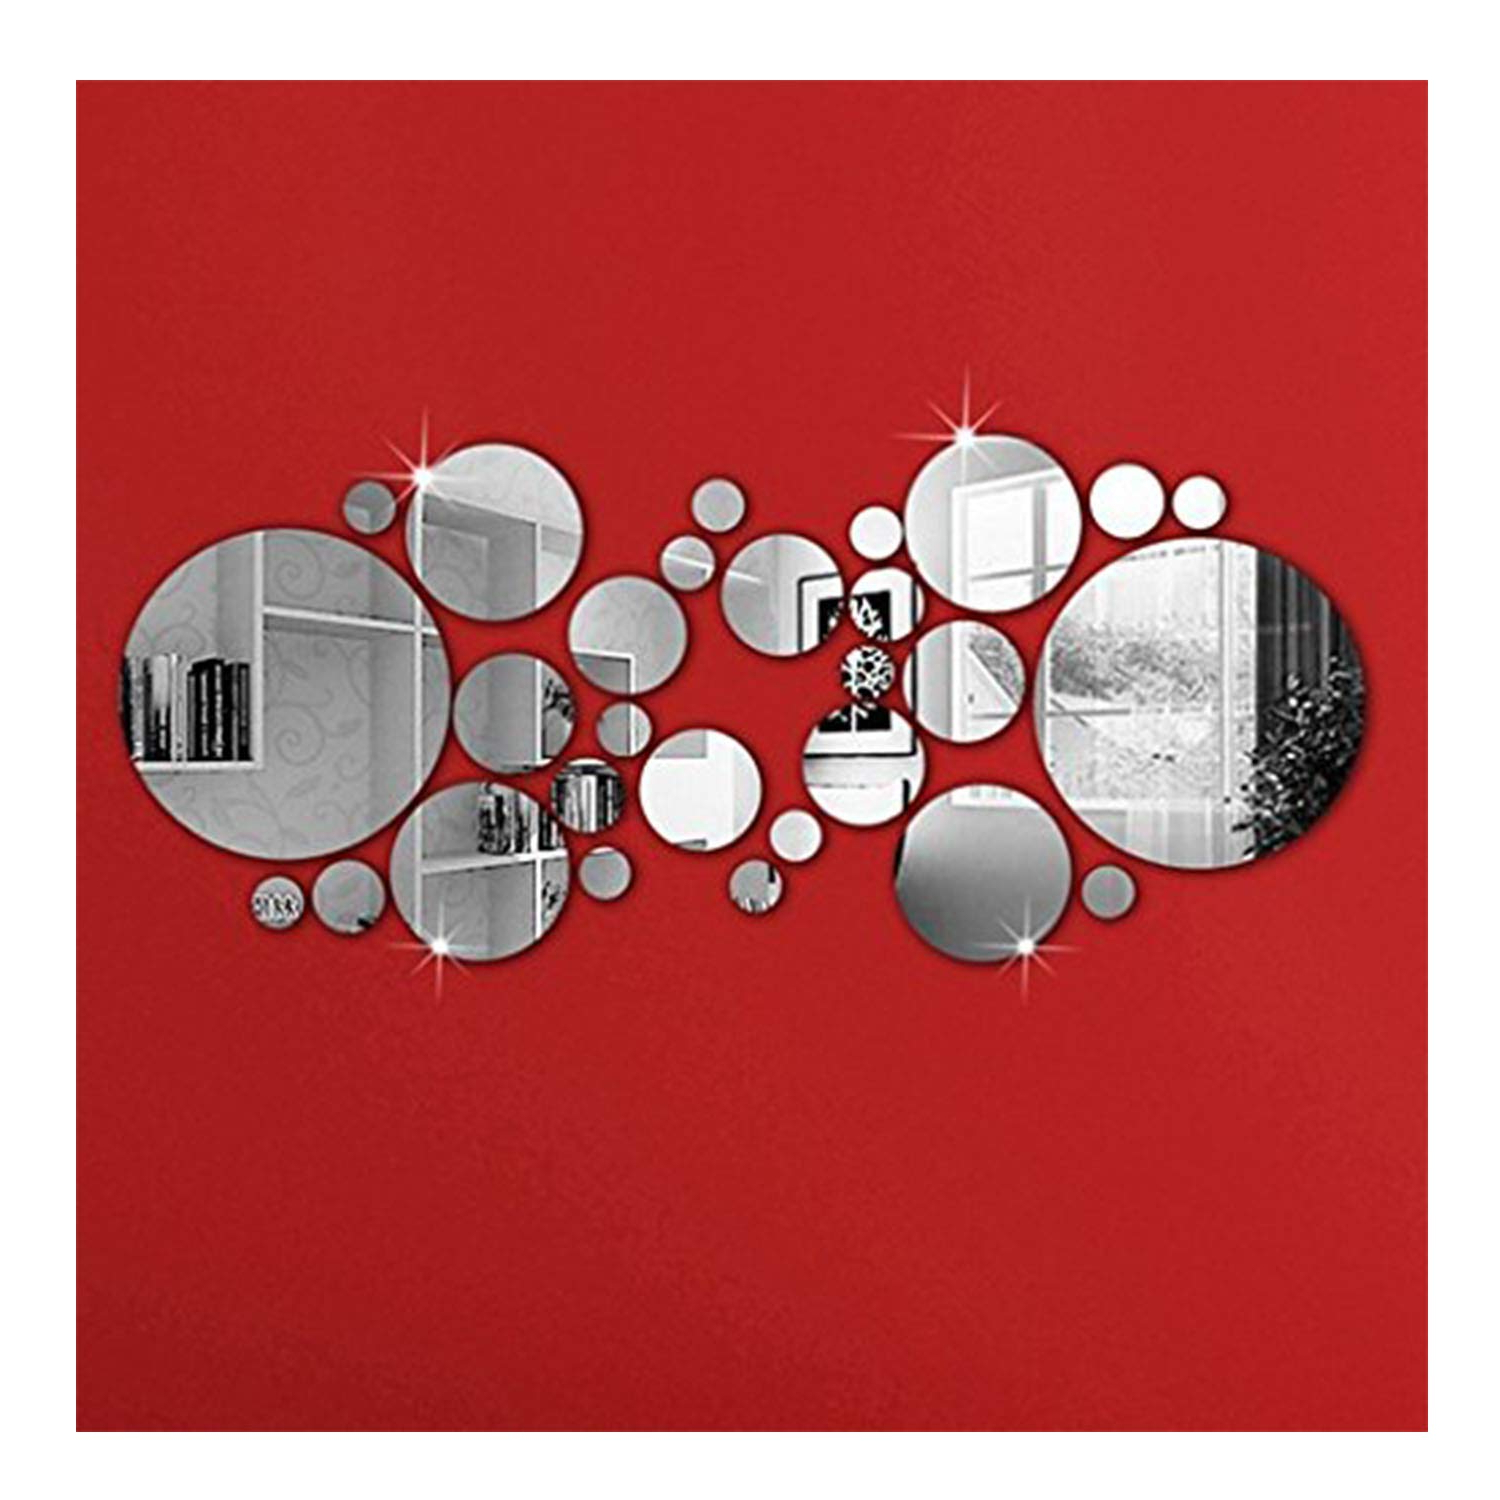 Widely Used Omgai Diy Mirror Wall Sticker, Removable Round Acrylic Mirror Decor Of Self Adhesive Circle For Art Window Wall Decal Kitchen Home Decoration, 30Pcs With Regard To Stick On Wall Mirrors (View 7 of 20)